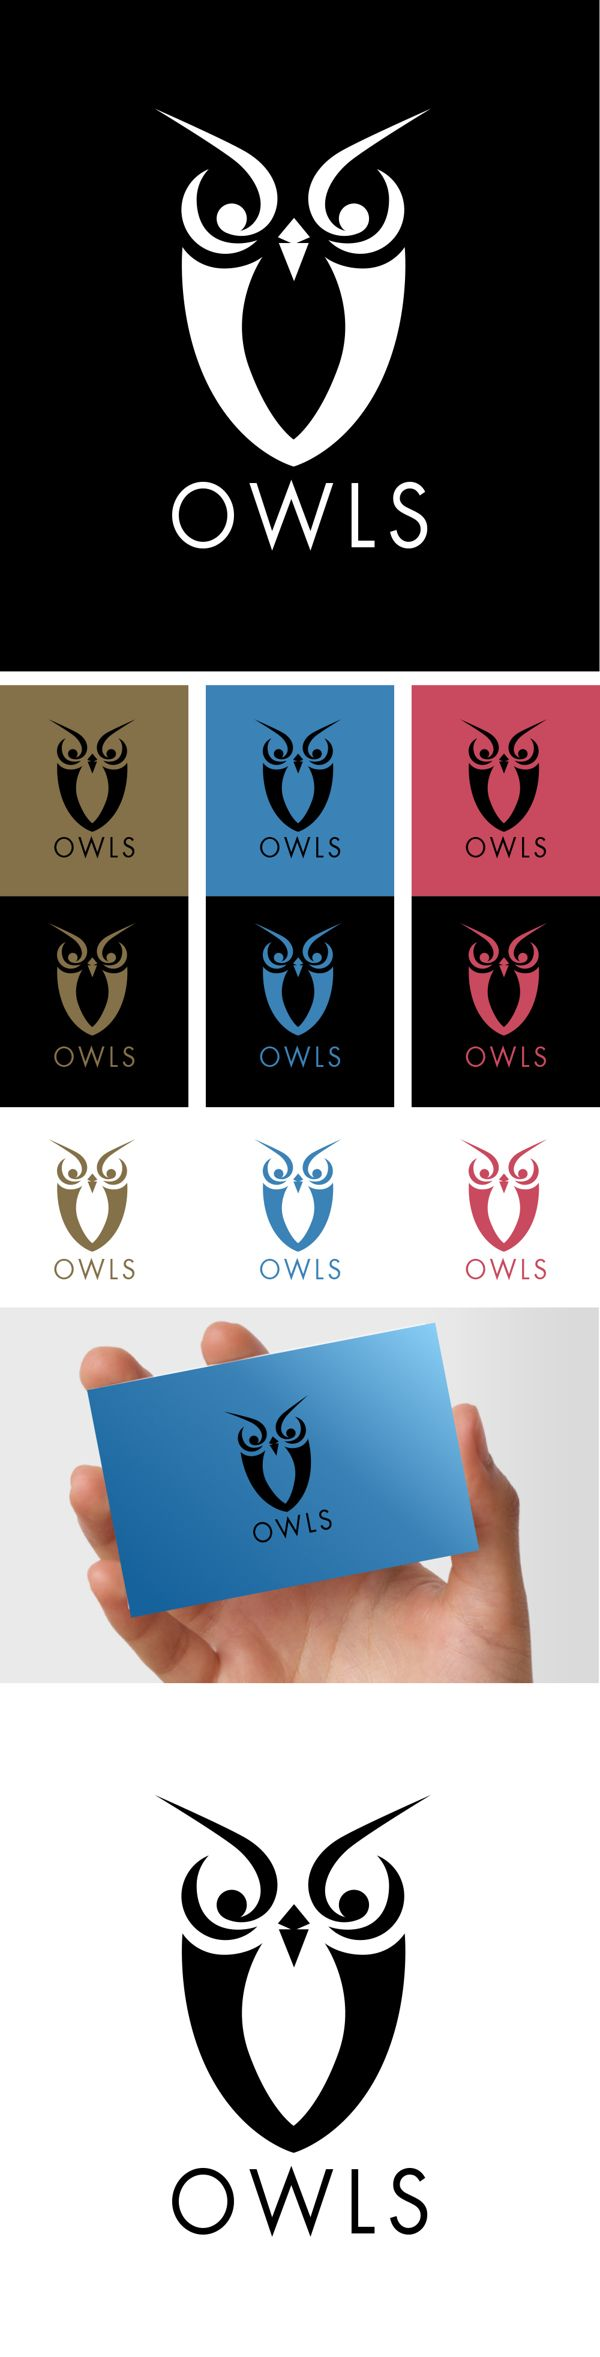 OWLS by Polkapixel , via Behance